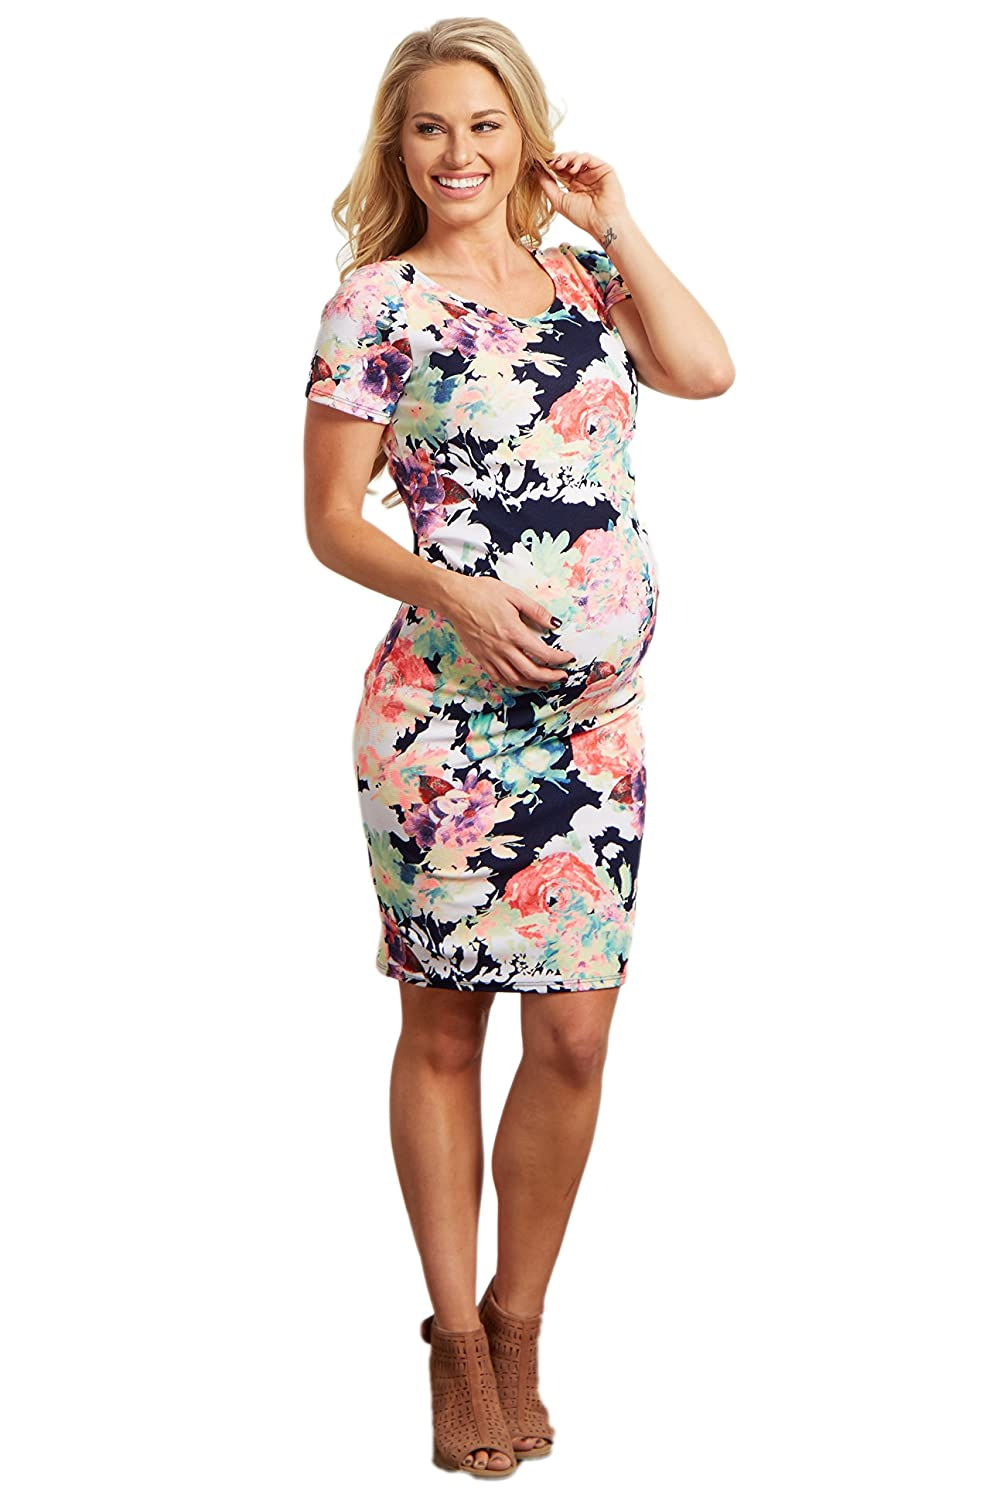 6086391fa40f PinkBlush Maternity Neon Floral Print Fitted Dress at Amazon Women's  Clothing store: